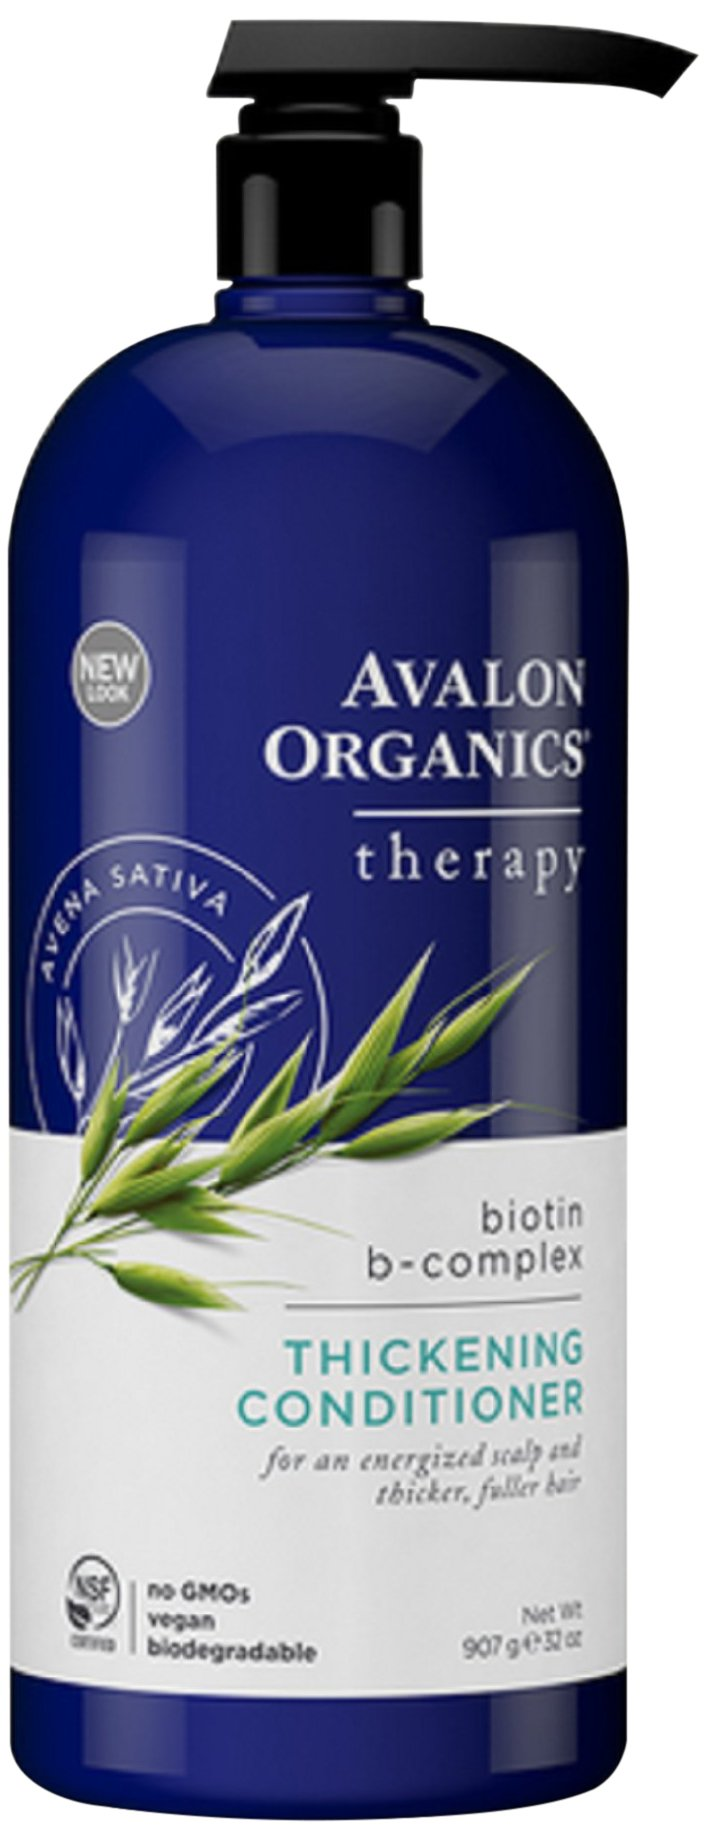 Avalon Organics Biotin-B Complex Thickening Conditioner, 32 Ounce